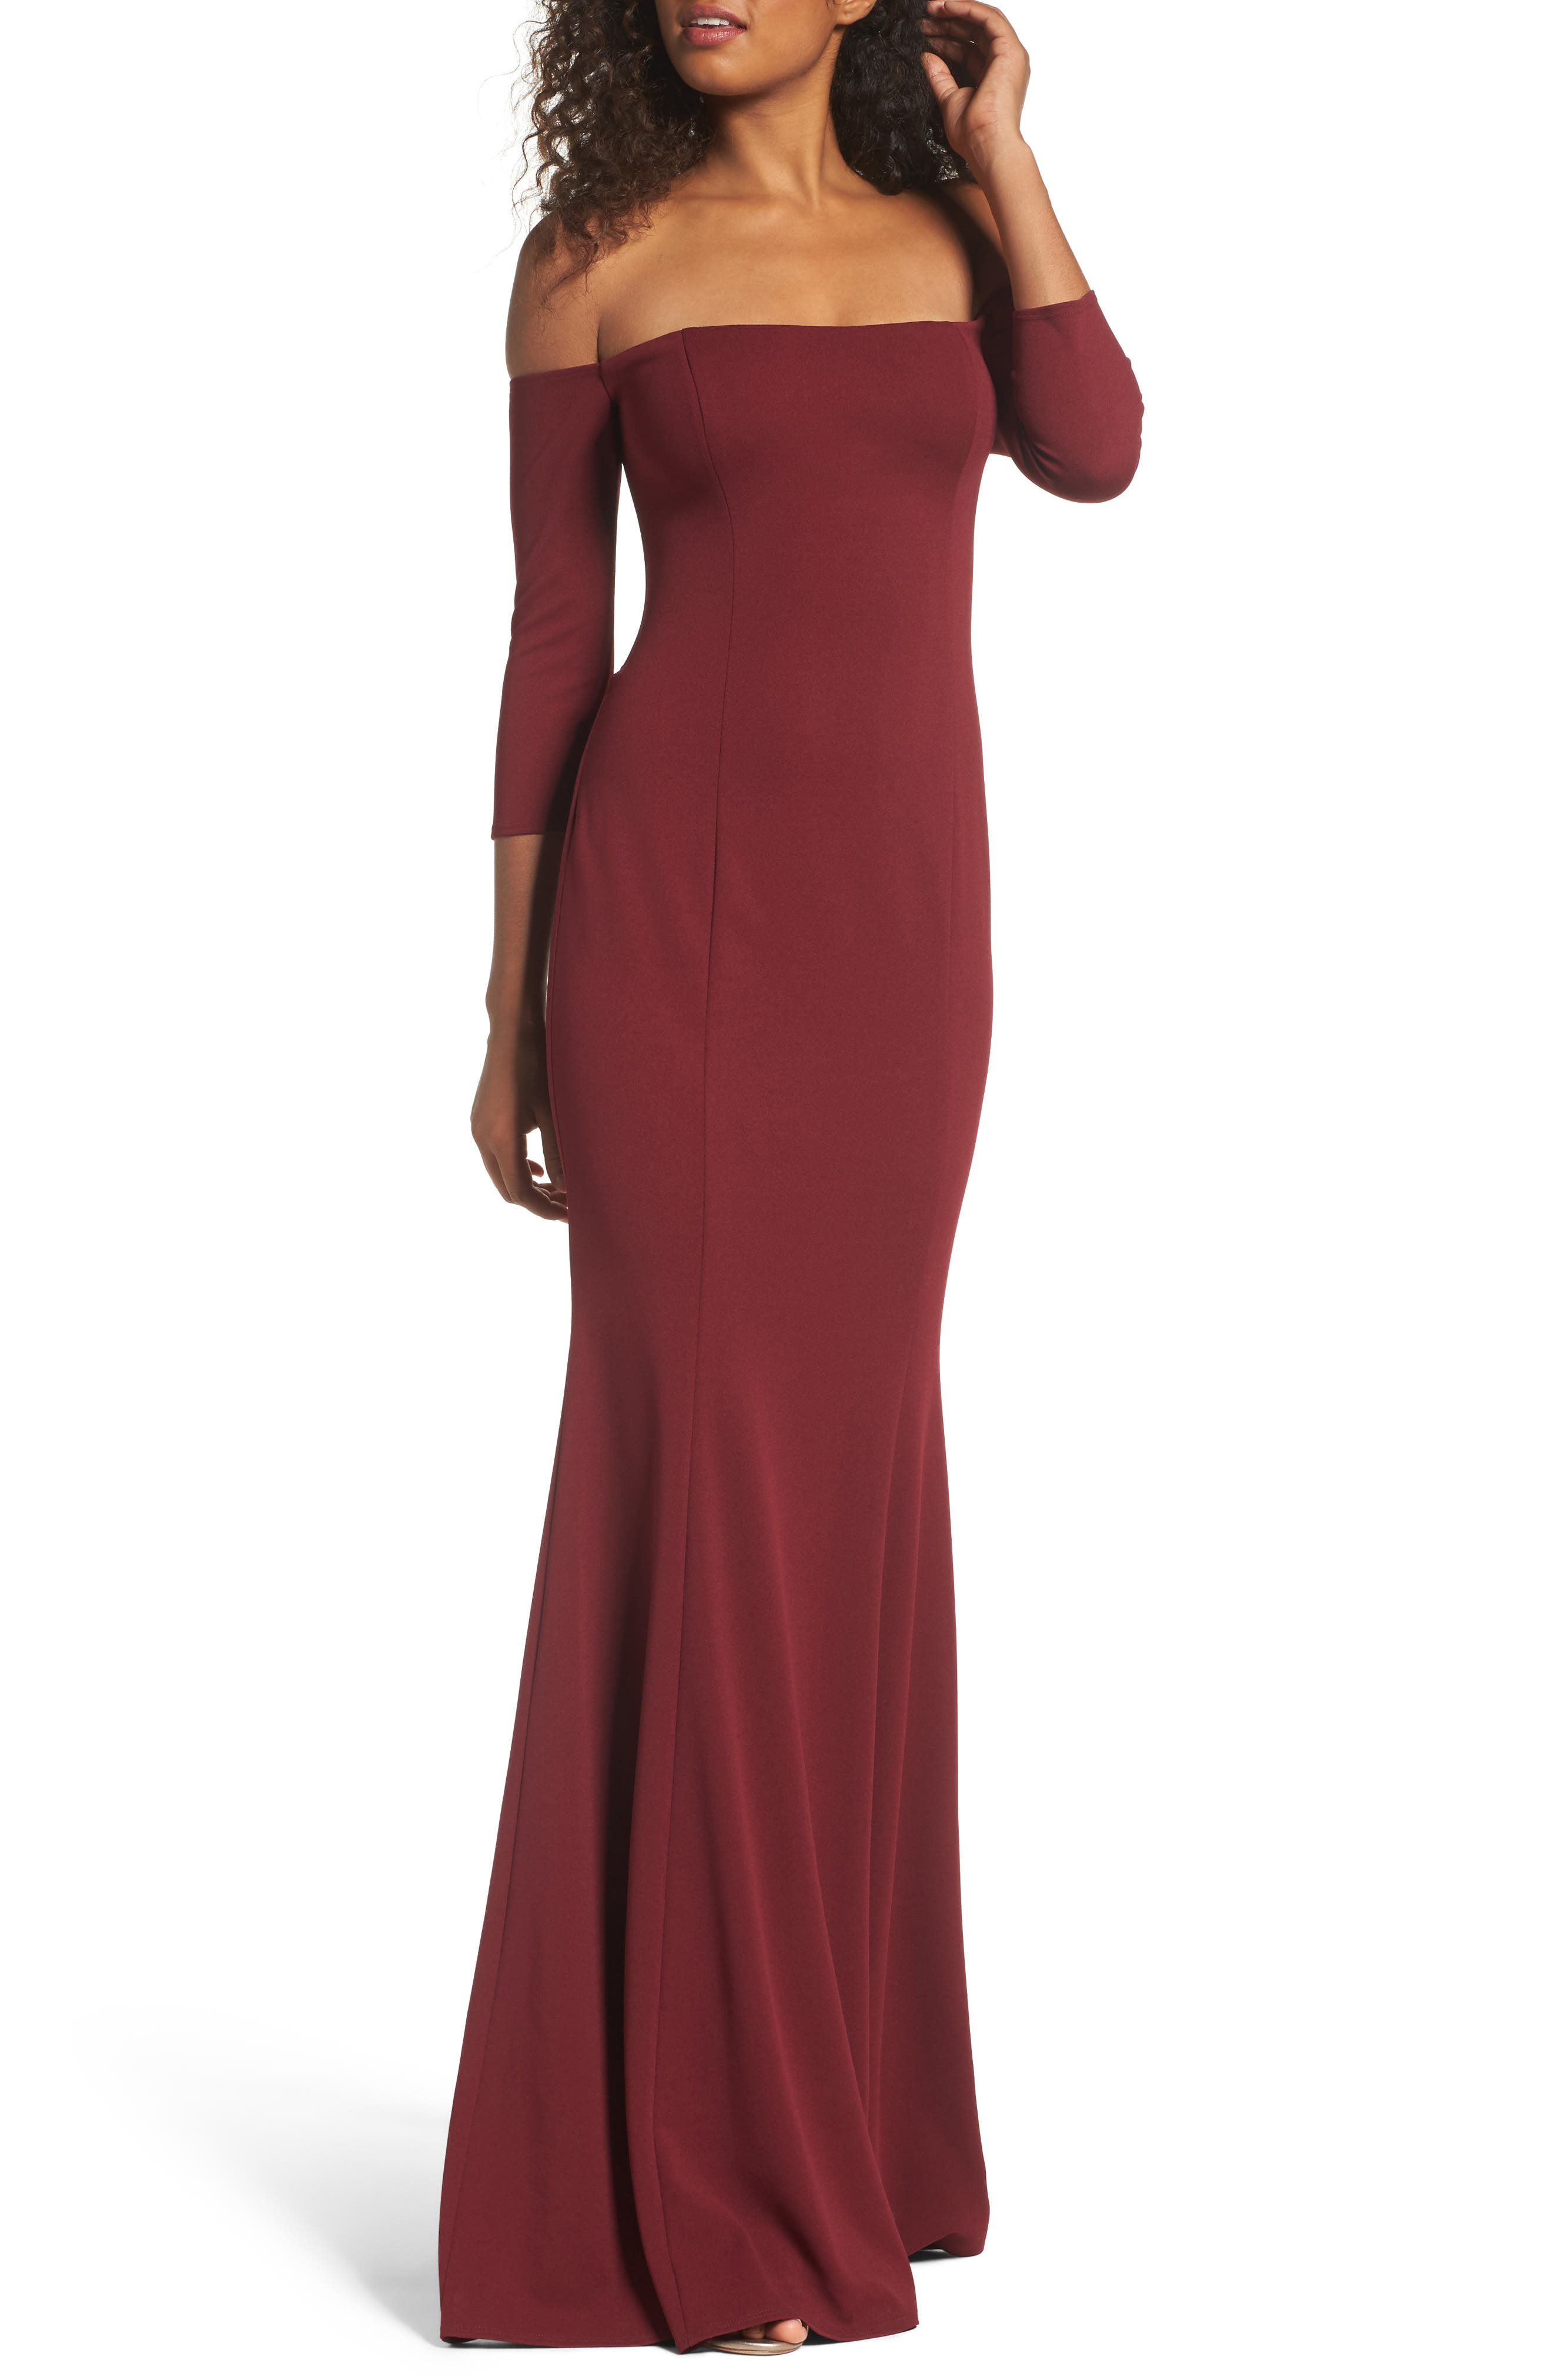 Katie May Brentwood Three-Quarter Sleeve Off the Shoulder Gown